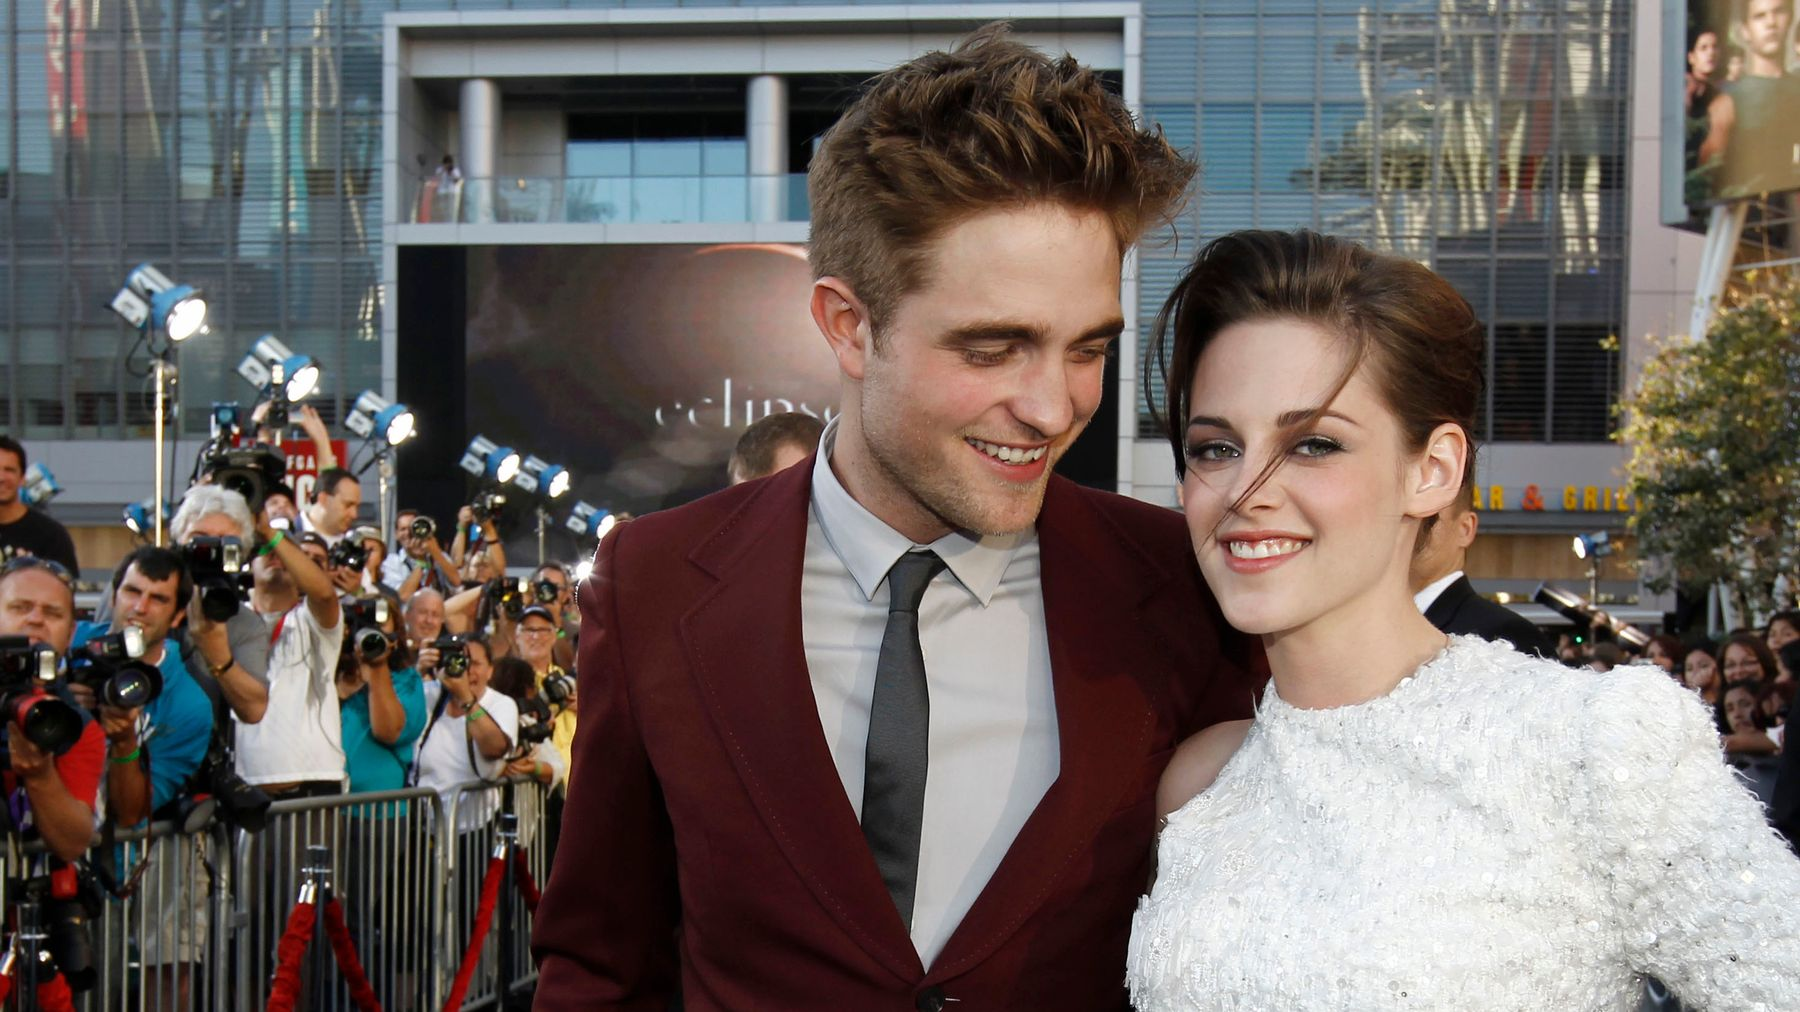 """""""robert-pattinson-was-crazy-about-kristen-stewart-and-thought-hed-end-up-marrying-her-source-says"""""""